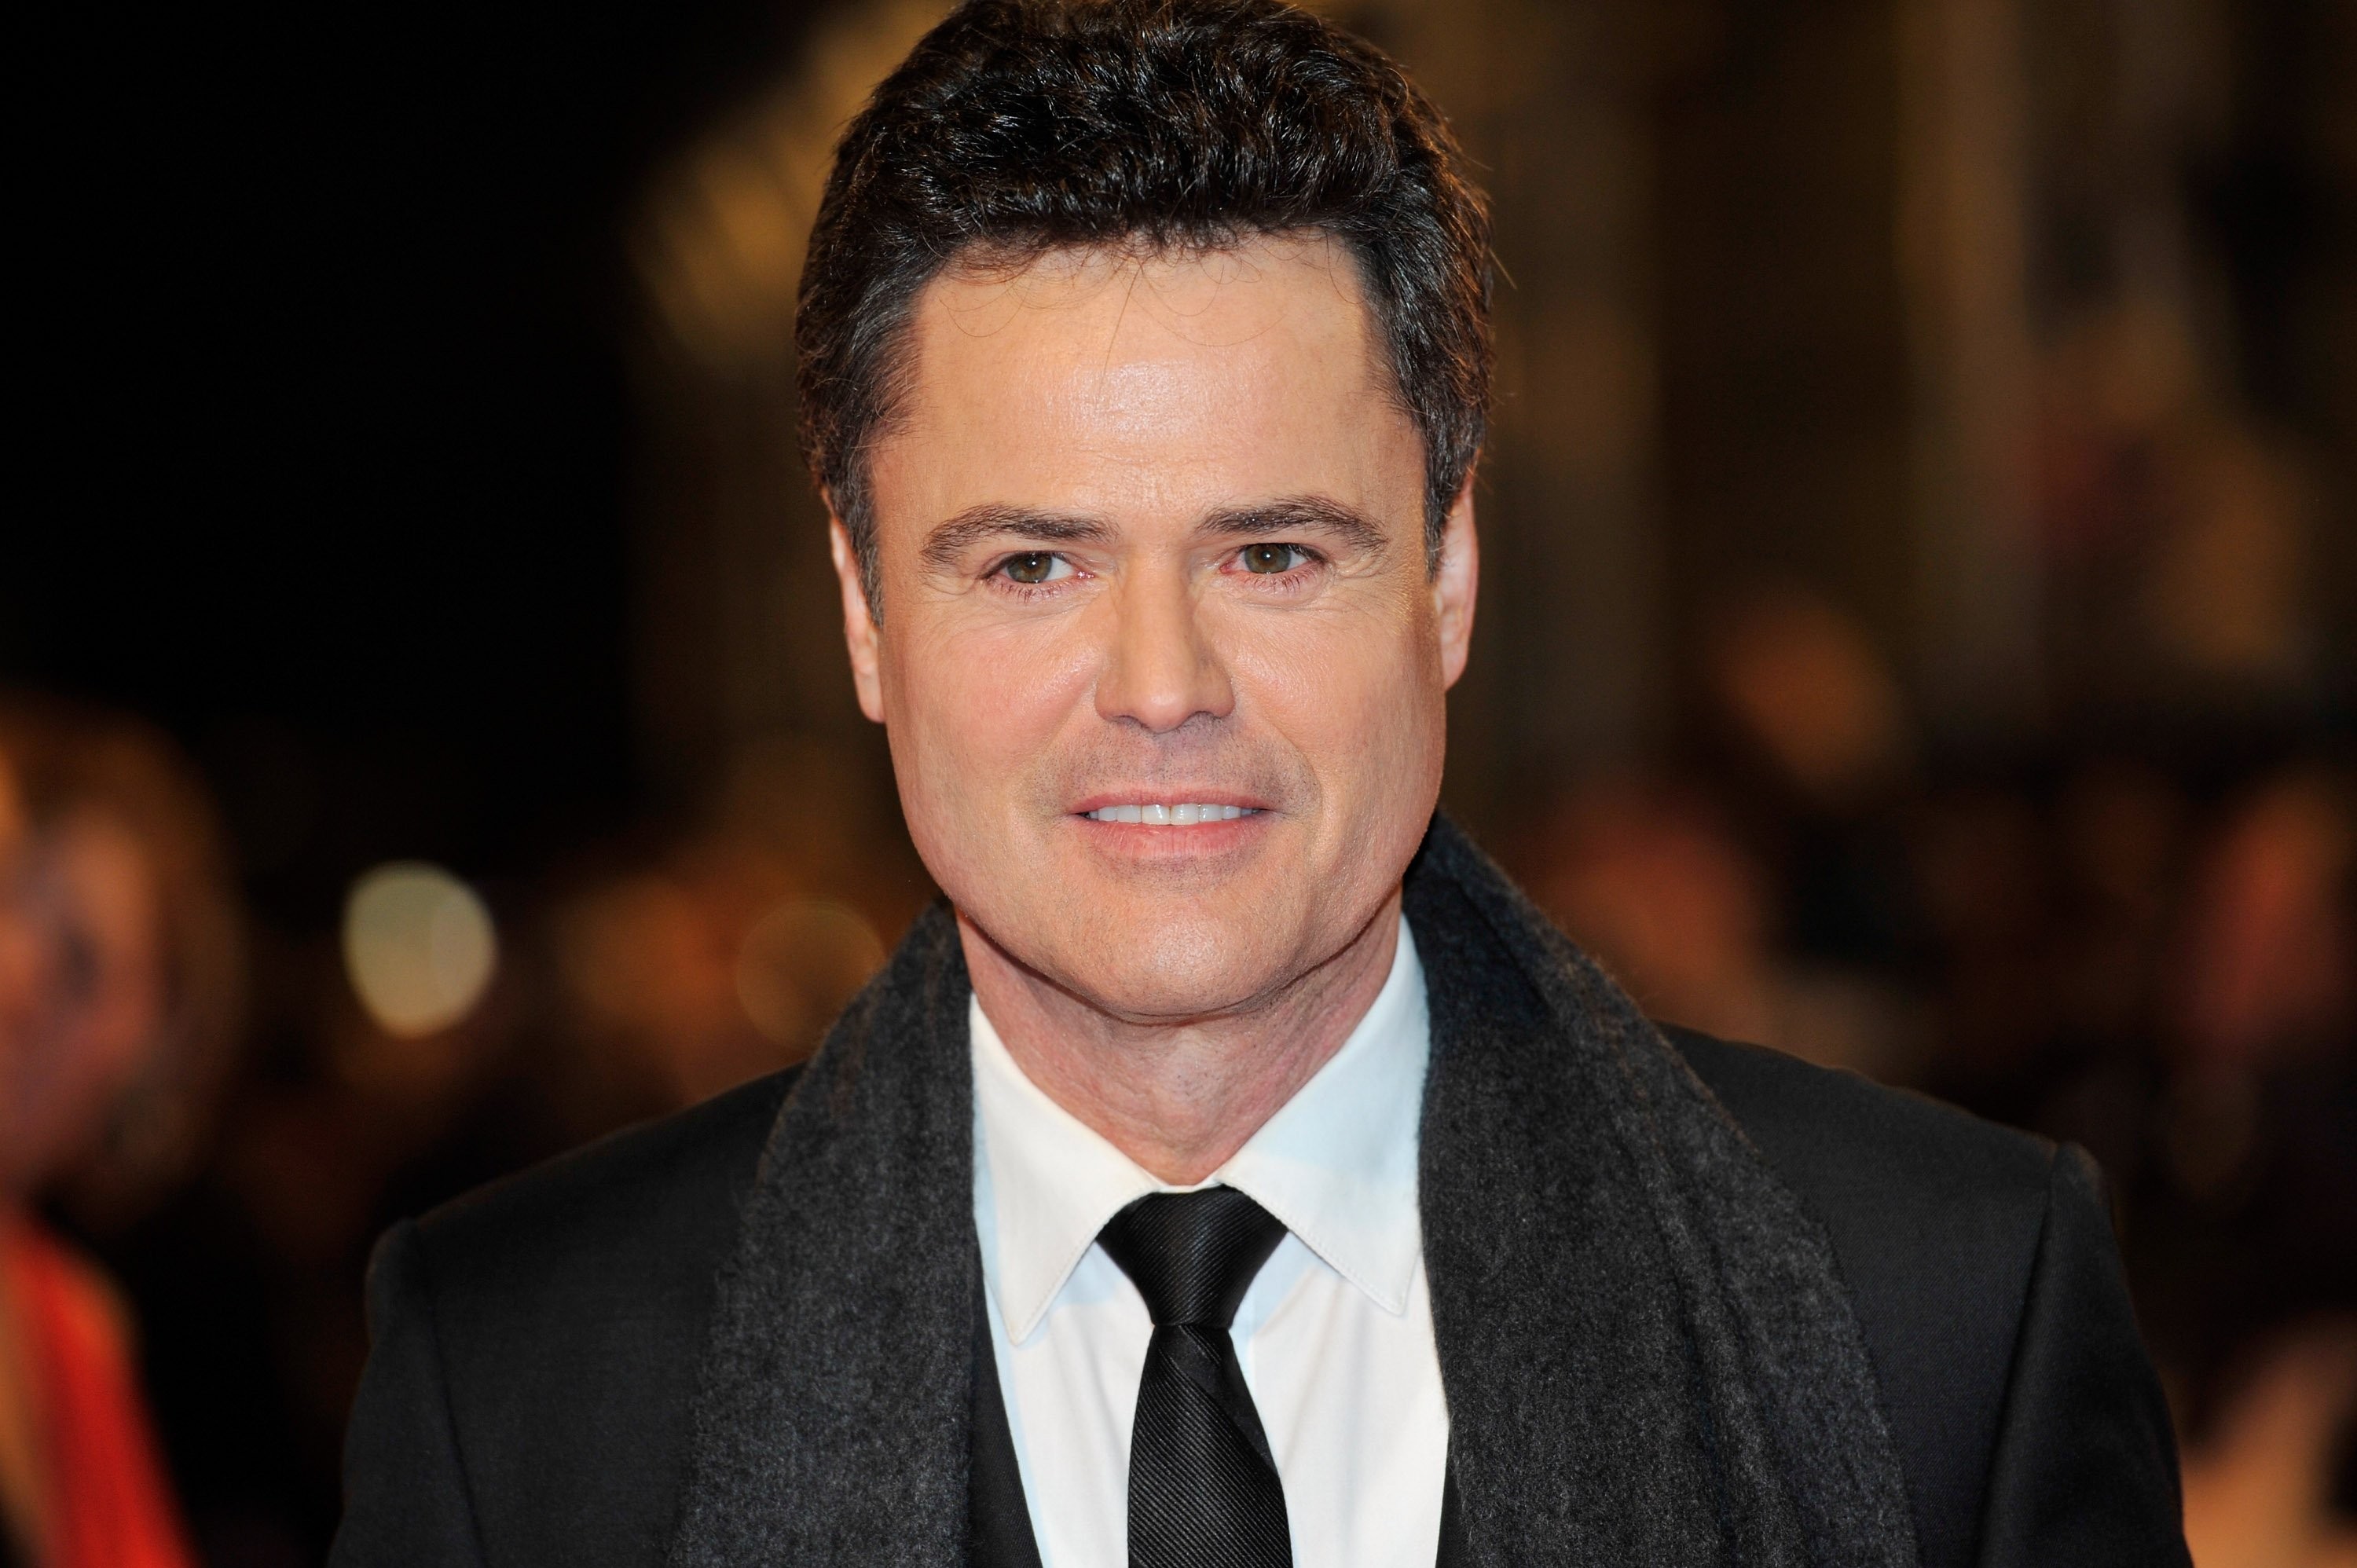 Donny Osmond attends the National Television Awards in London, England on January 23, 2013 | Photo: Getty Images